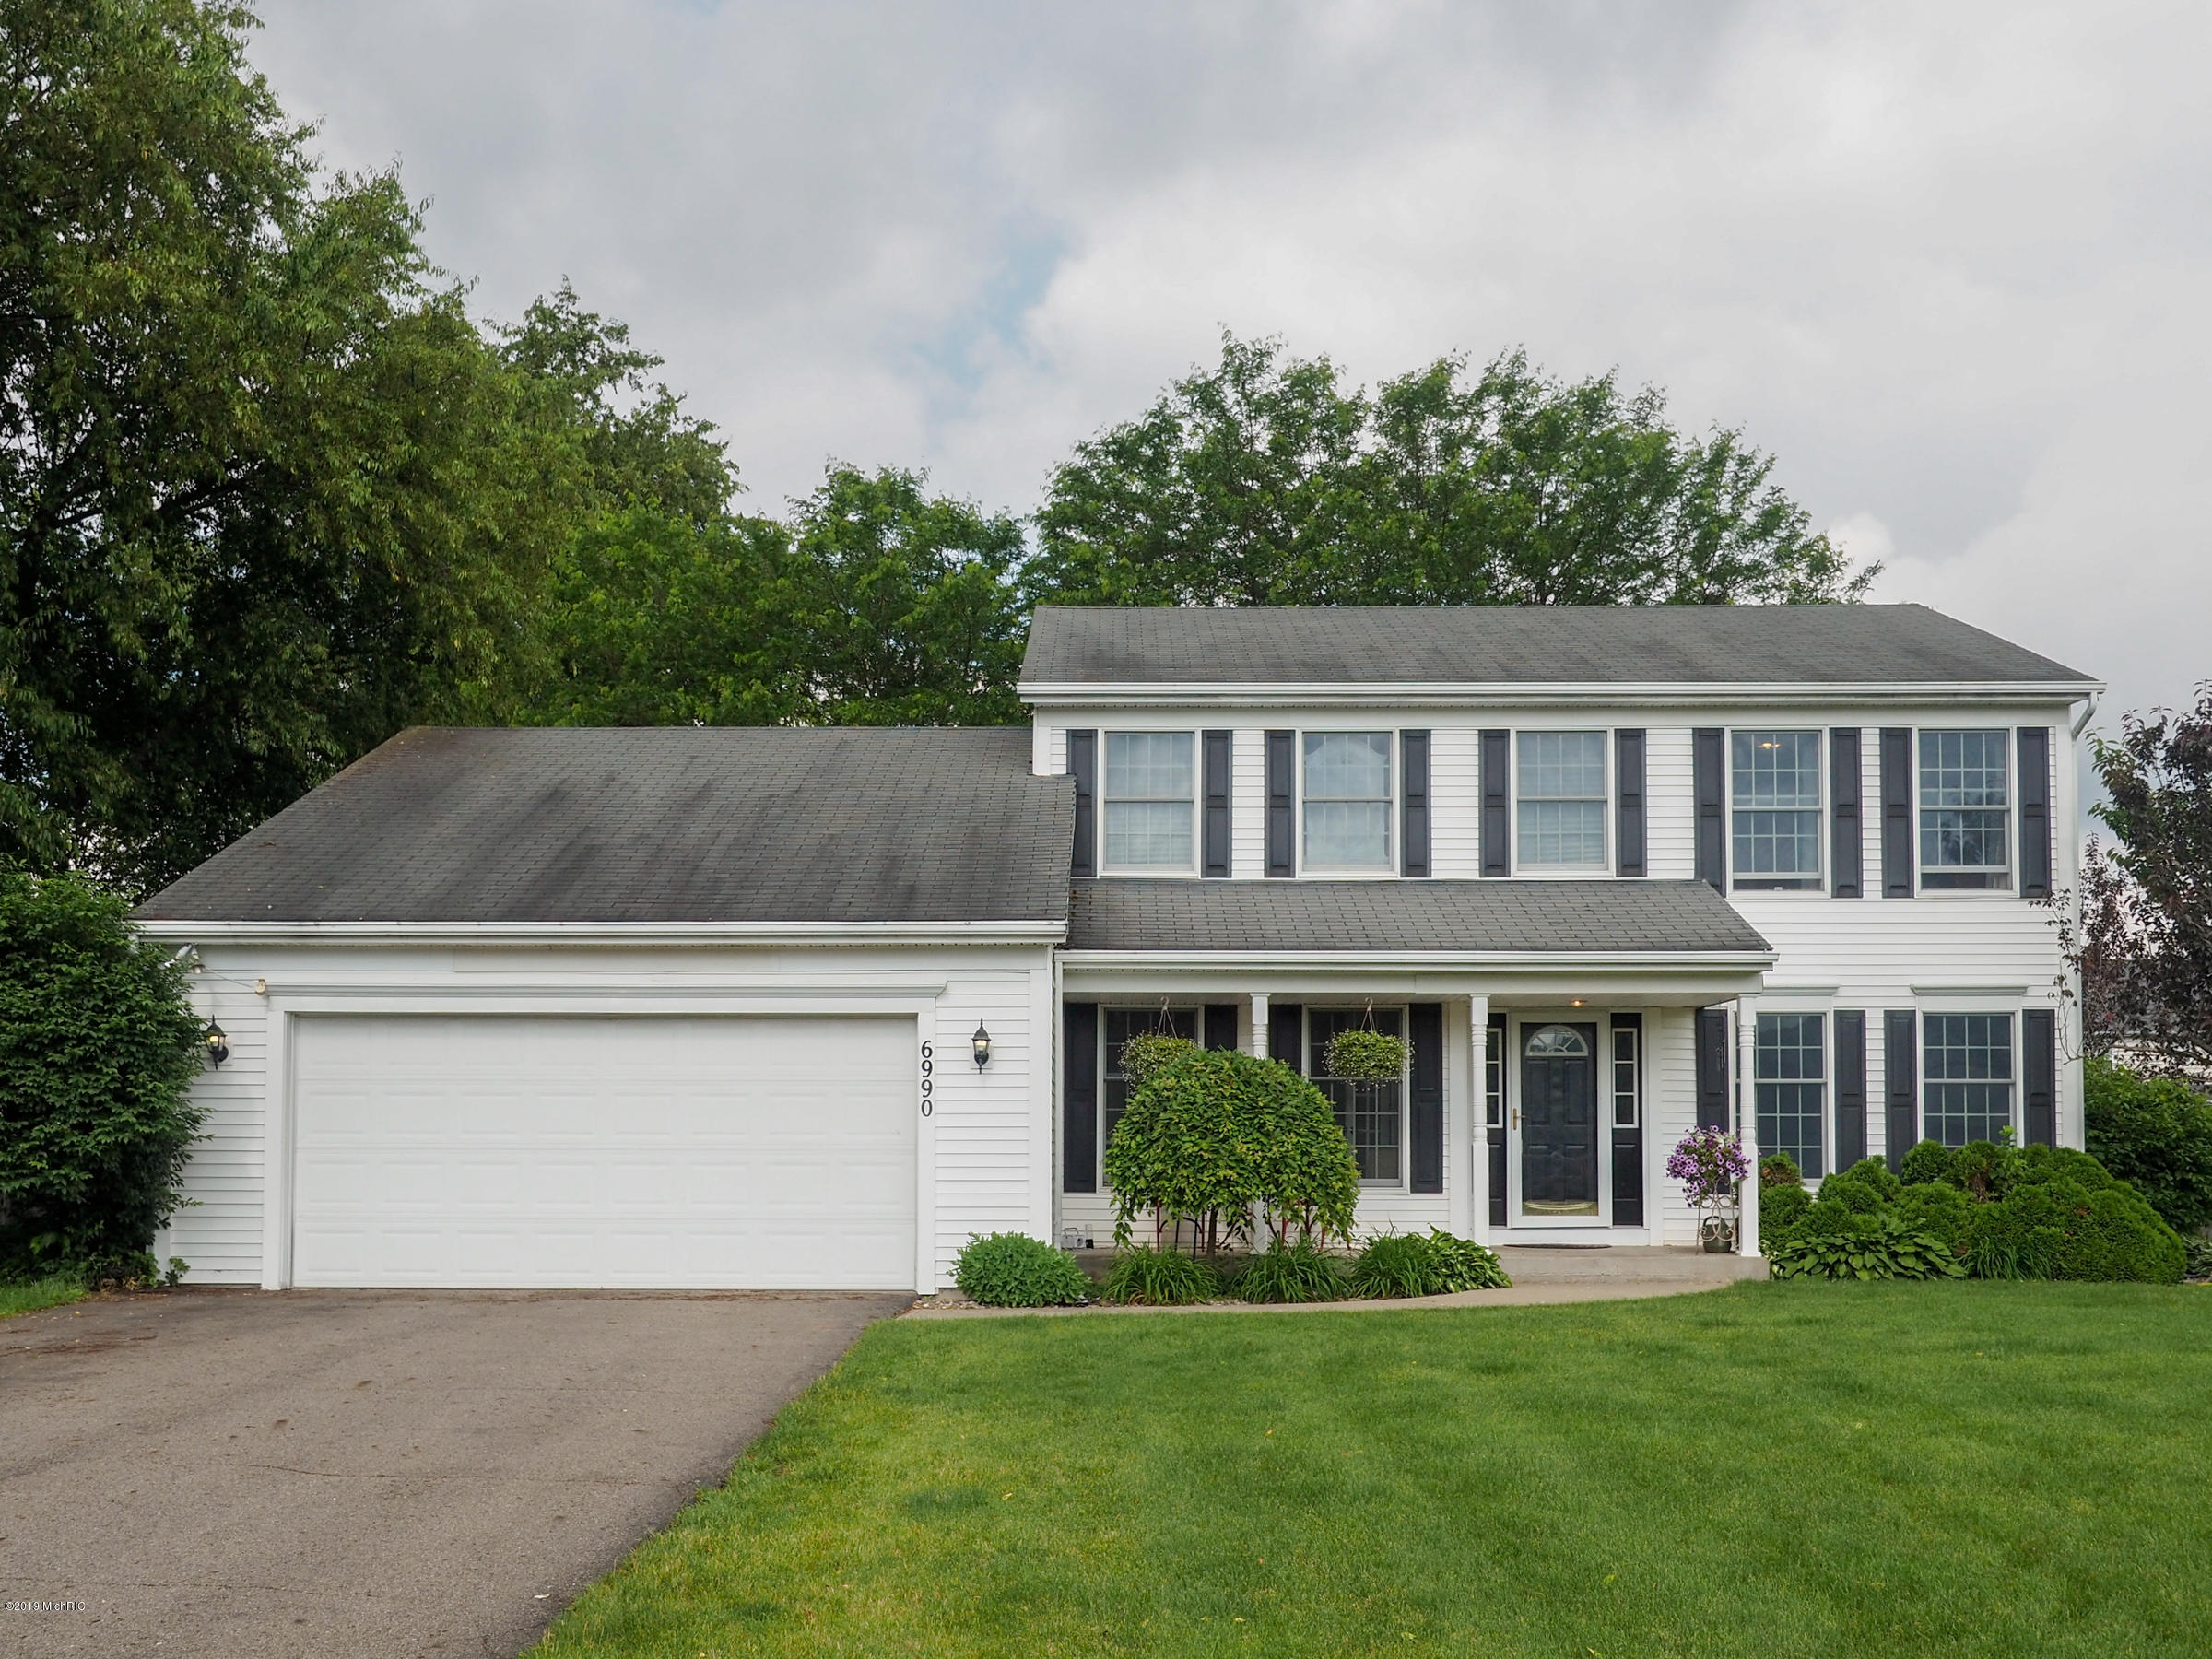 Photo for 6990 Bay Ridge Road, Kalamazoo, MI 49009 (MLS # 19028166)